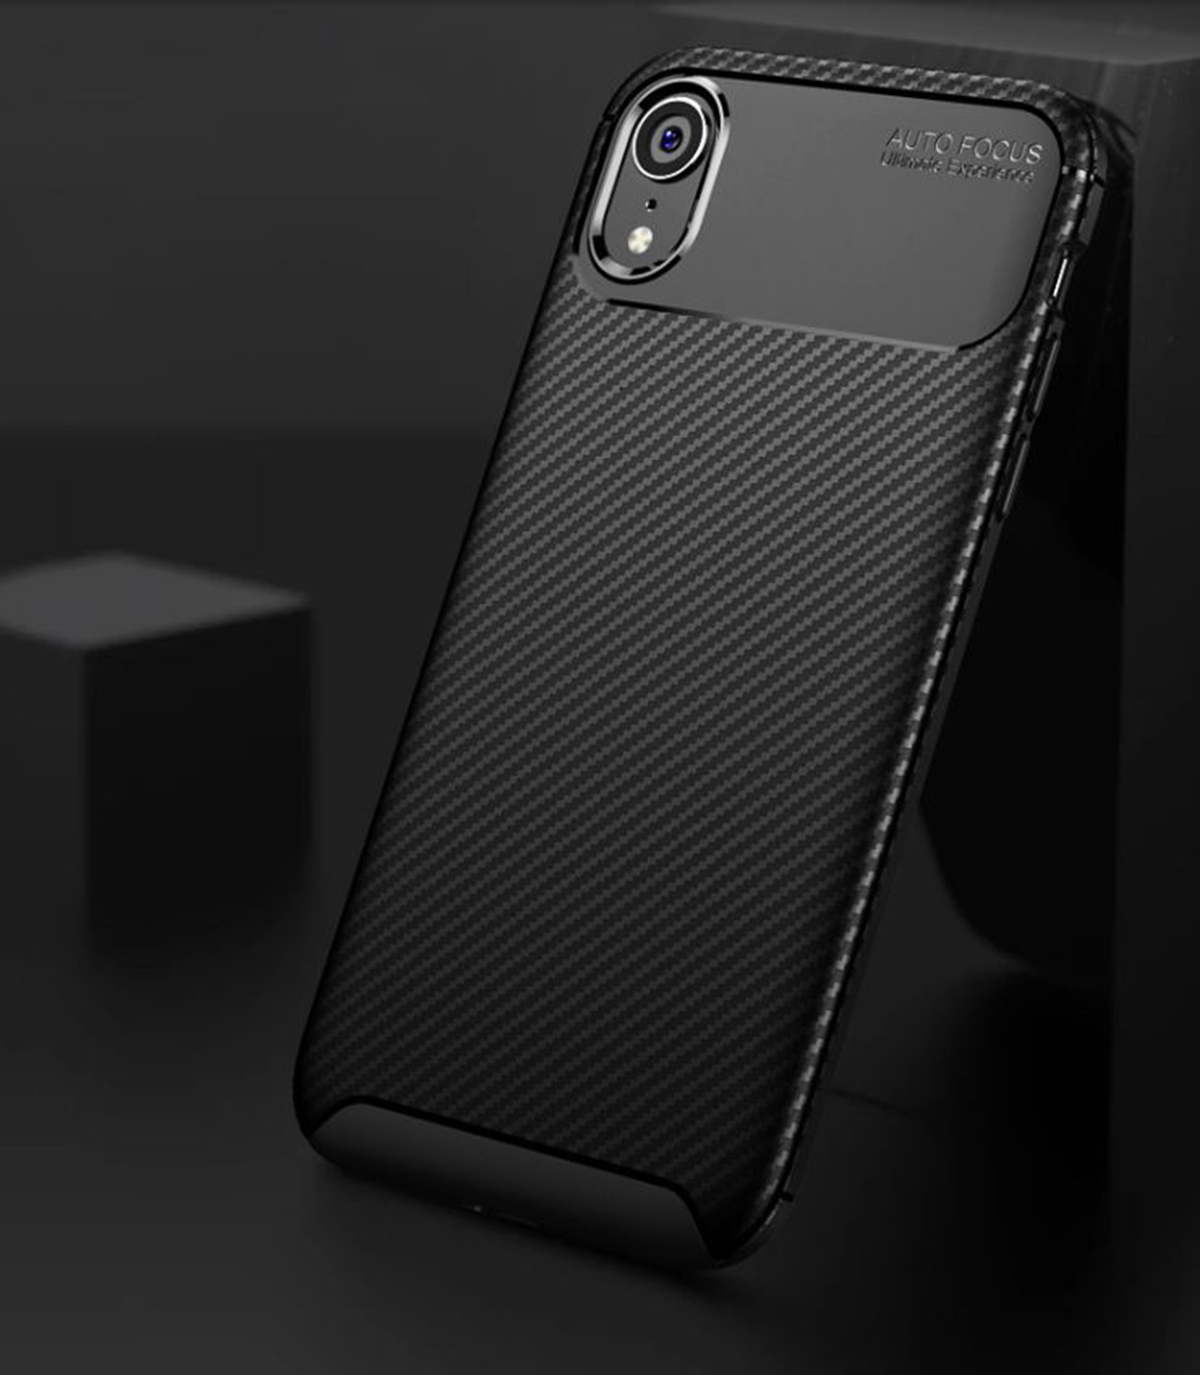 Case-for-iPhone-Carbon-Fibre-Soft-Cover-TPU-Silicone-Slim-11-X-XR-Max-8-7-6-Plus thumbnail 22